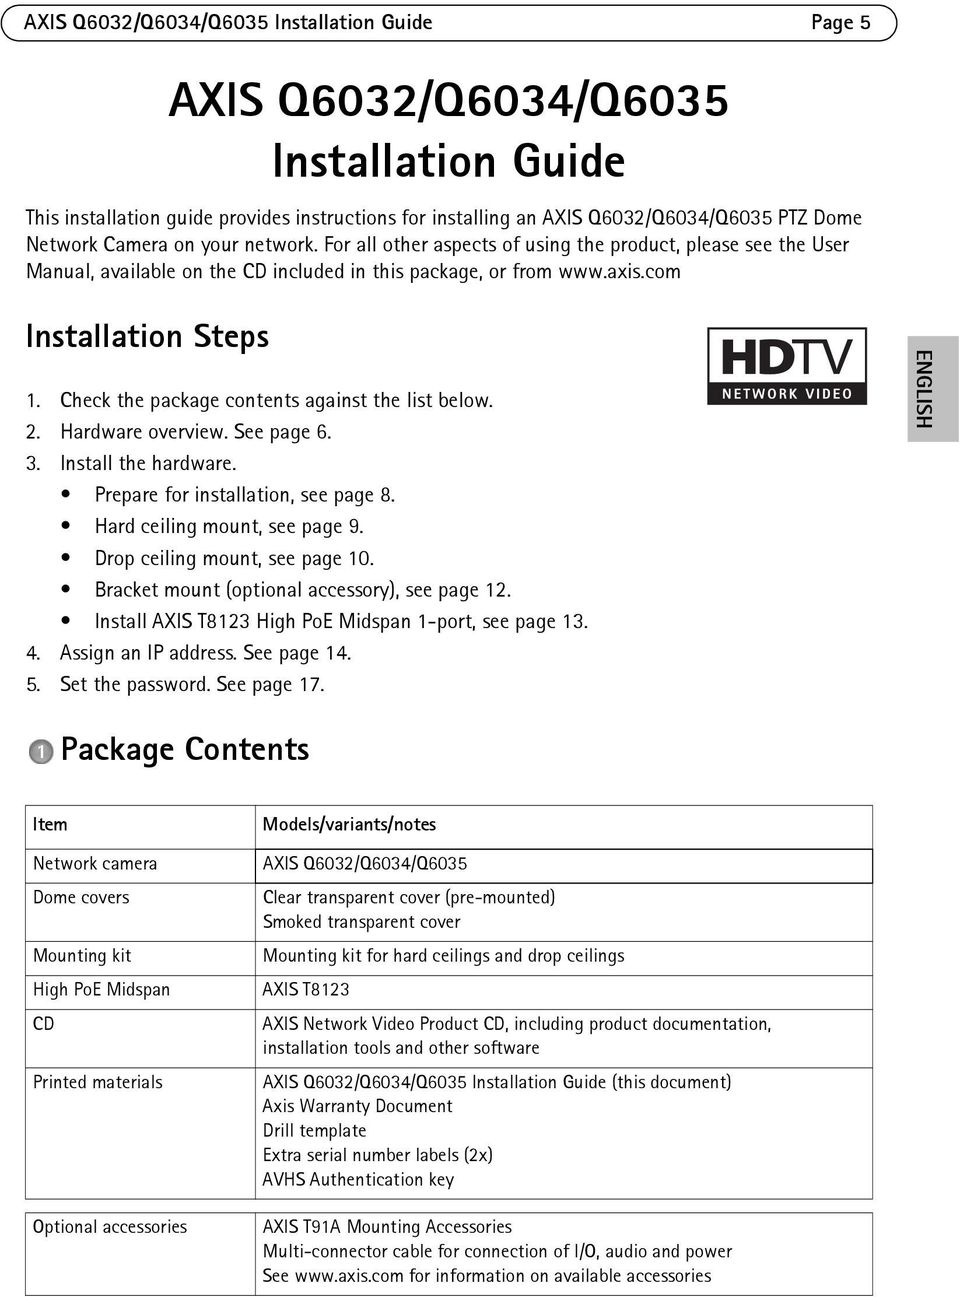 Check the package contents against the list below. 2. Hardware overview. See page 6. 3. Install the hardware. Prepare for installation, see page 8. Hard ceiling mount, see page 9.